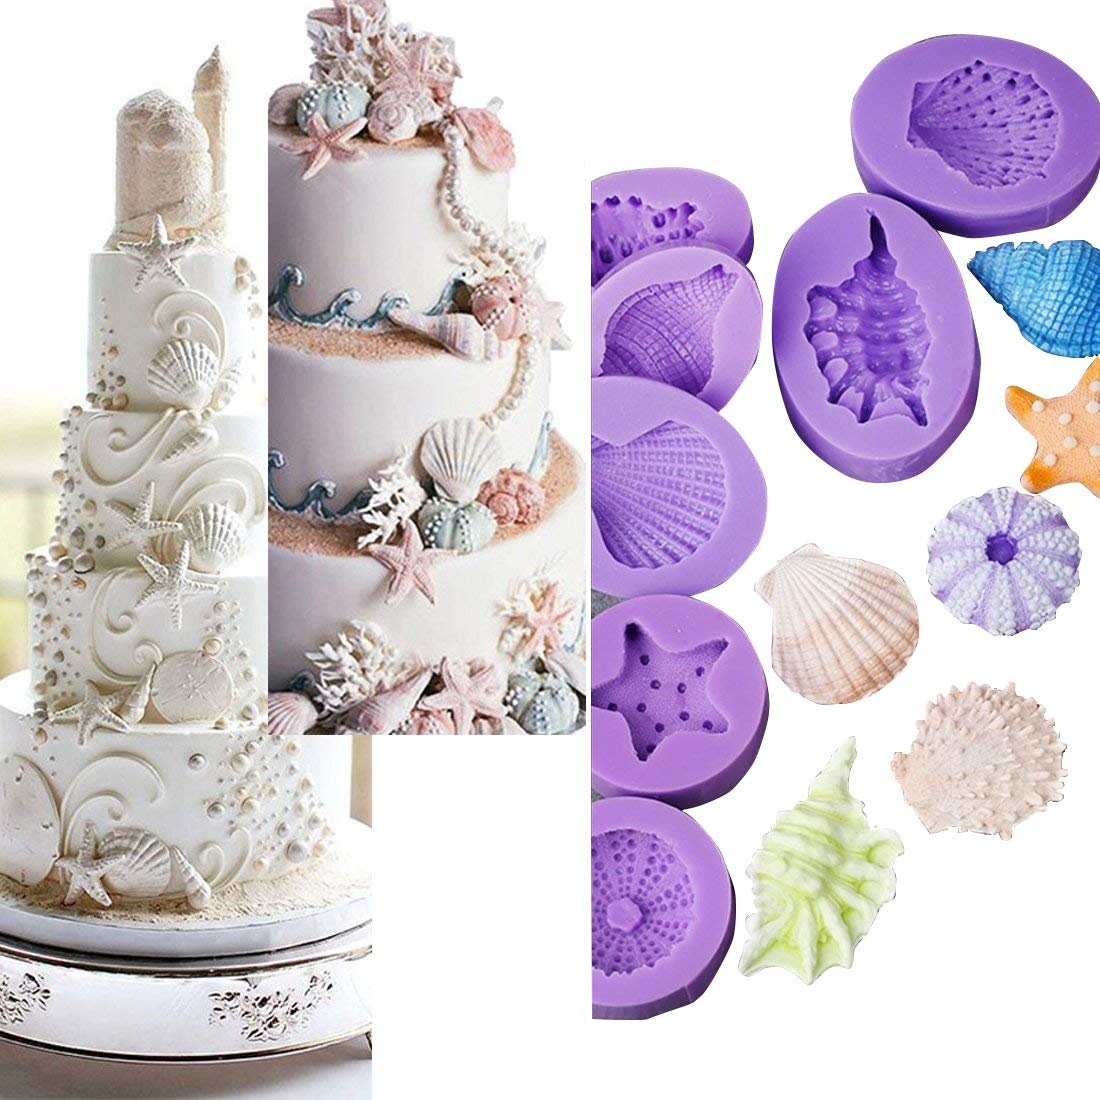 Anyana Seashell Starfish Sea Urchin Seagull mold Fondant silicone Mould for gum paste Sugar paste cake decorating cupcake topper decor set of 7pcs by Anyana (Image #9)